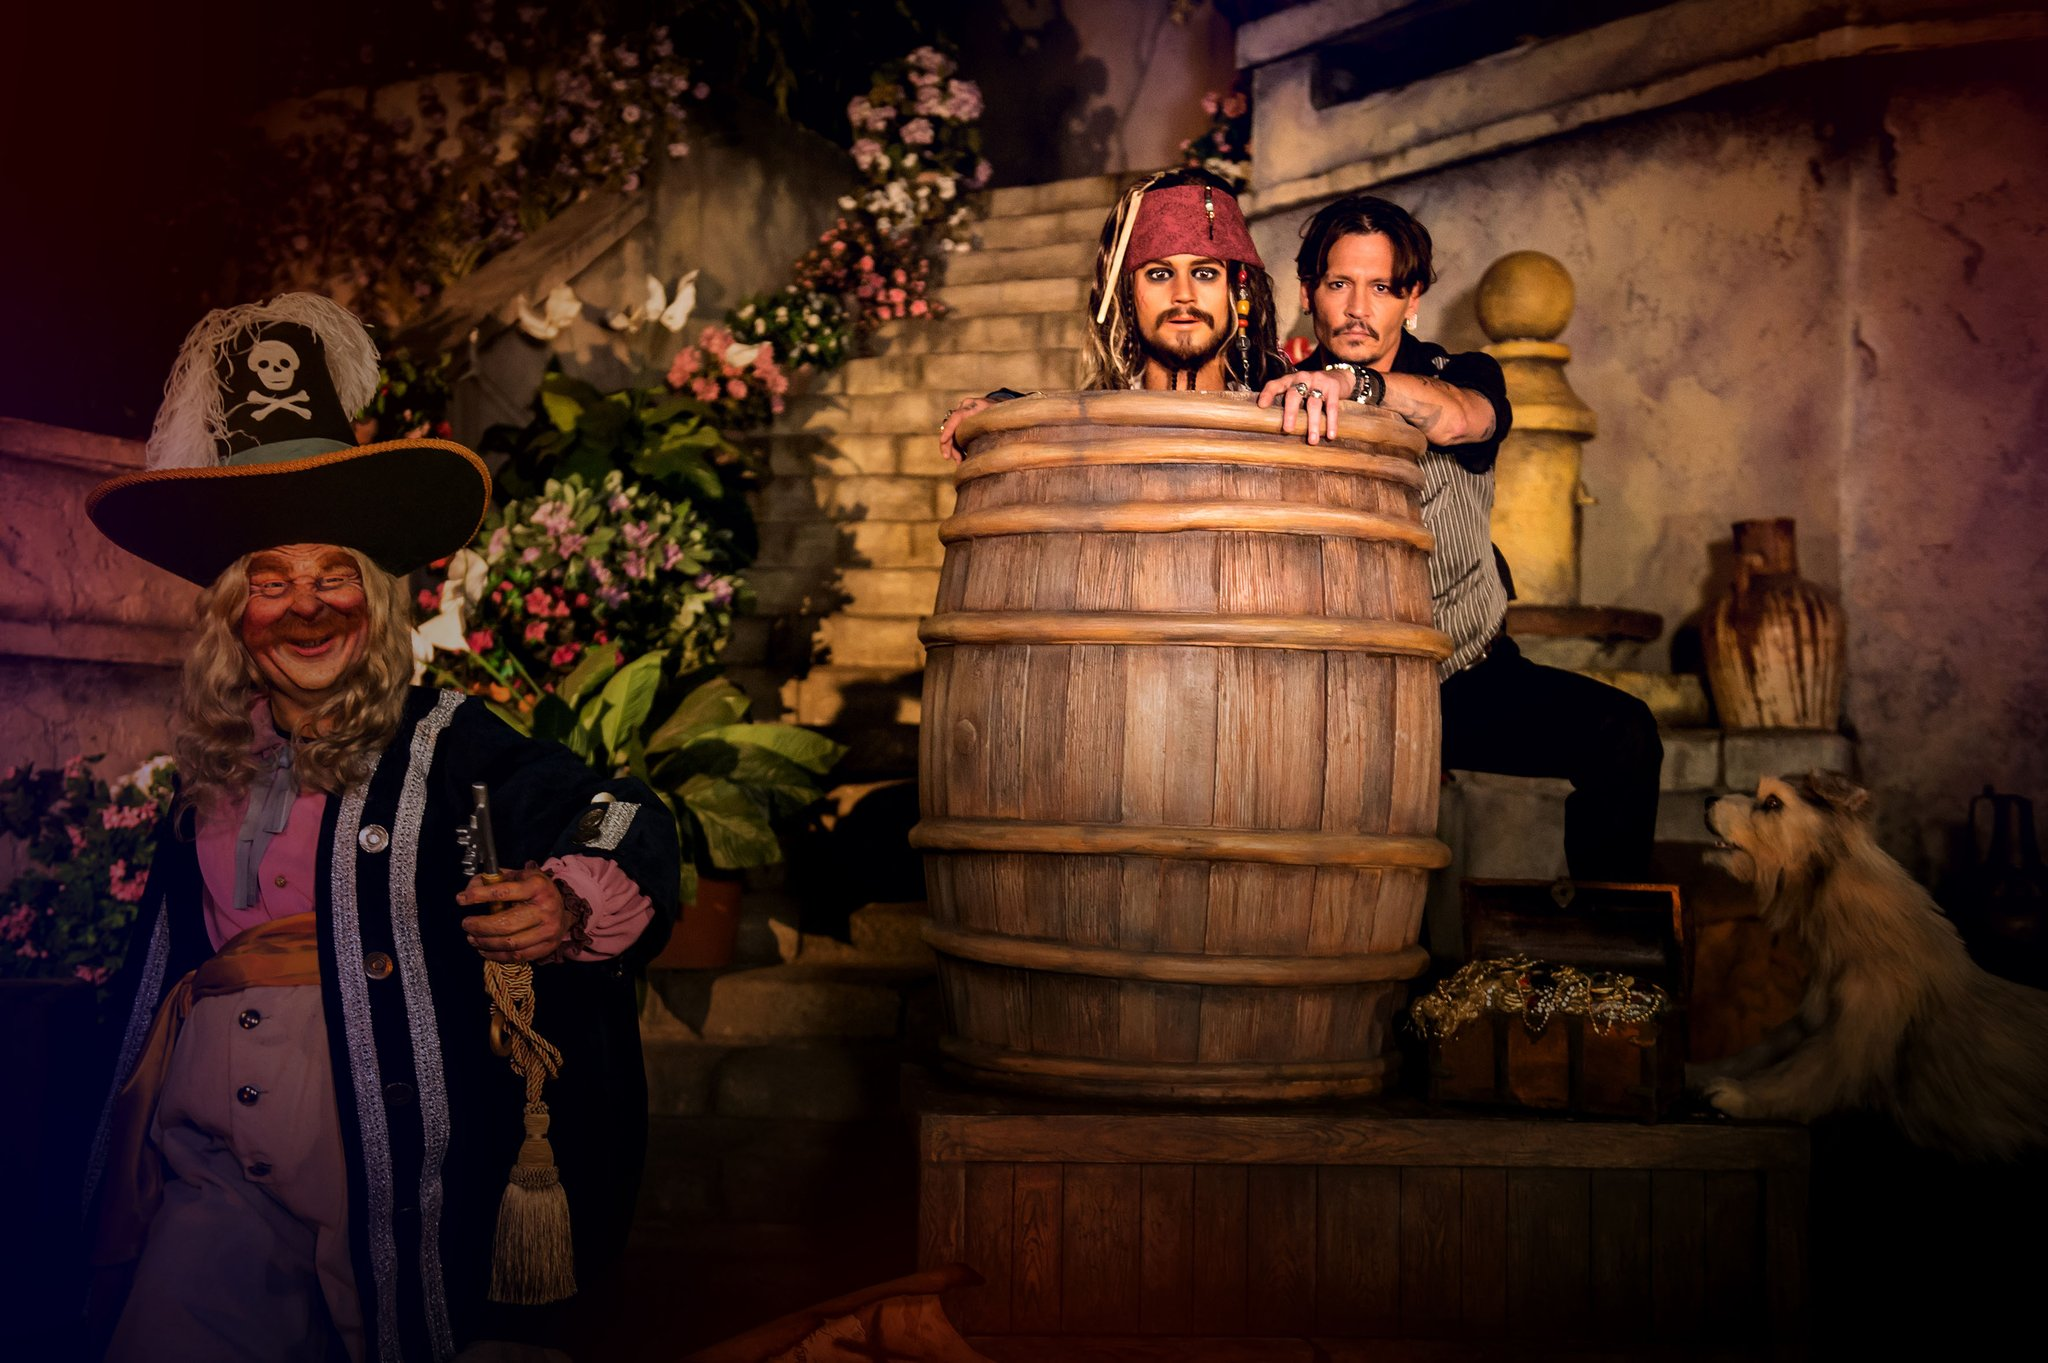 Here is how the refurbished Pirates of the Caribbean ride at @EuroDisneyEN will look like! https://t.co/y6vUcBkoF2